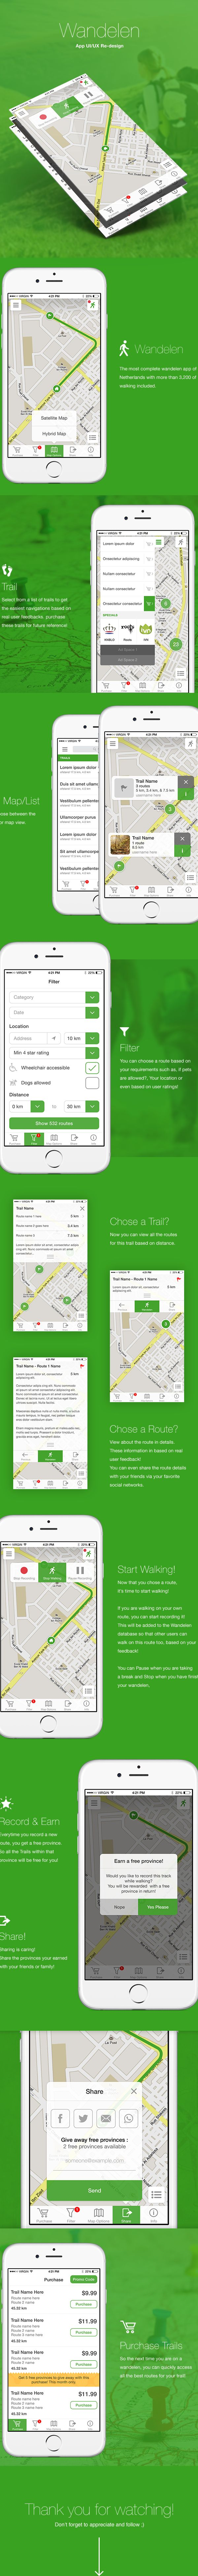 Wandelen | iPhone app UI design on Behance